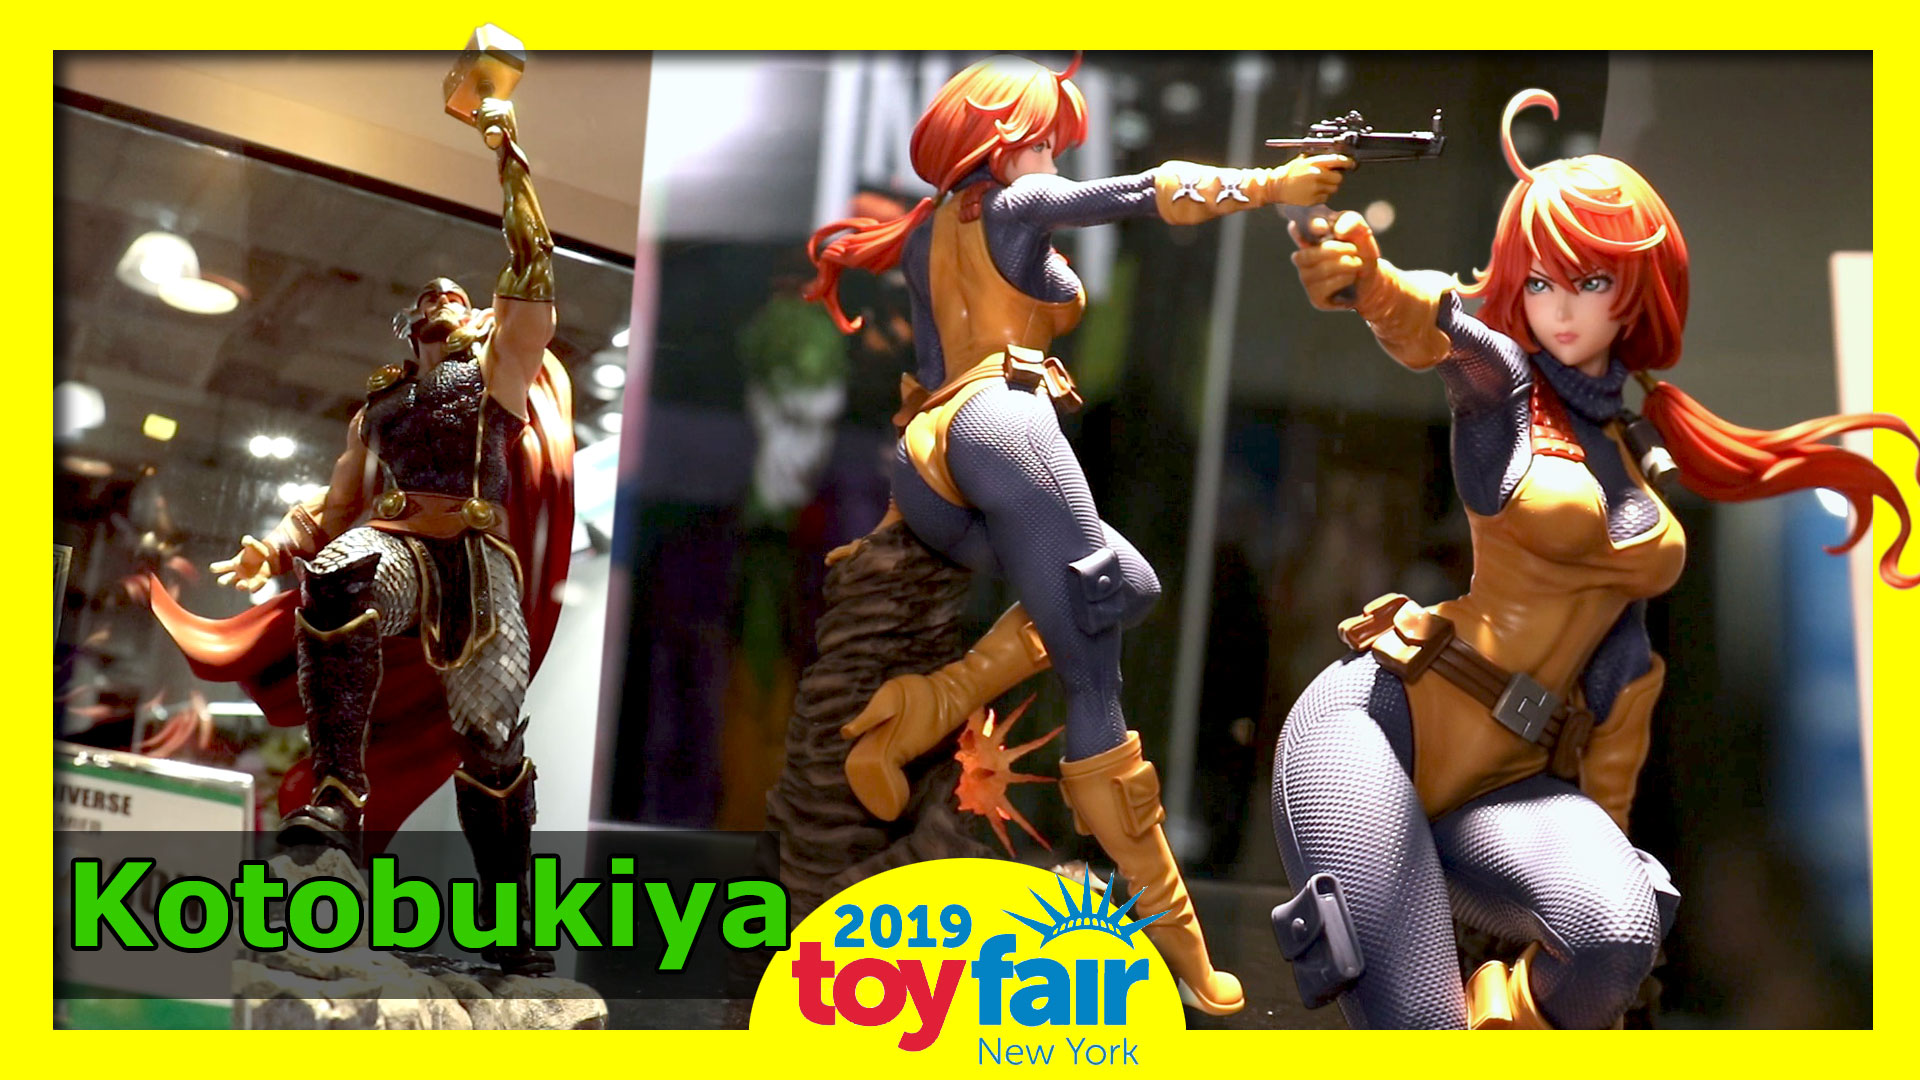 Kotobukiya @Toy Fair 2019